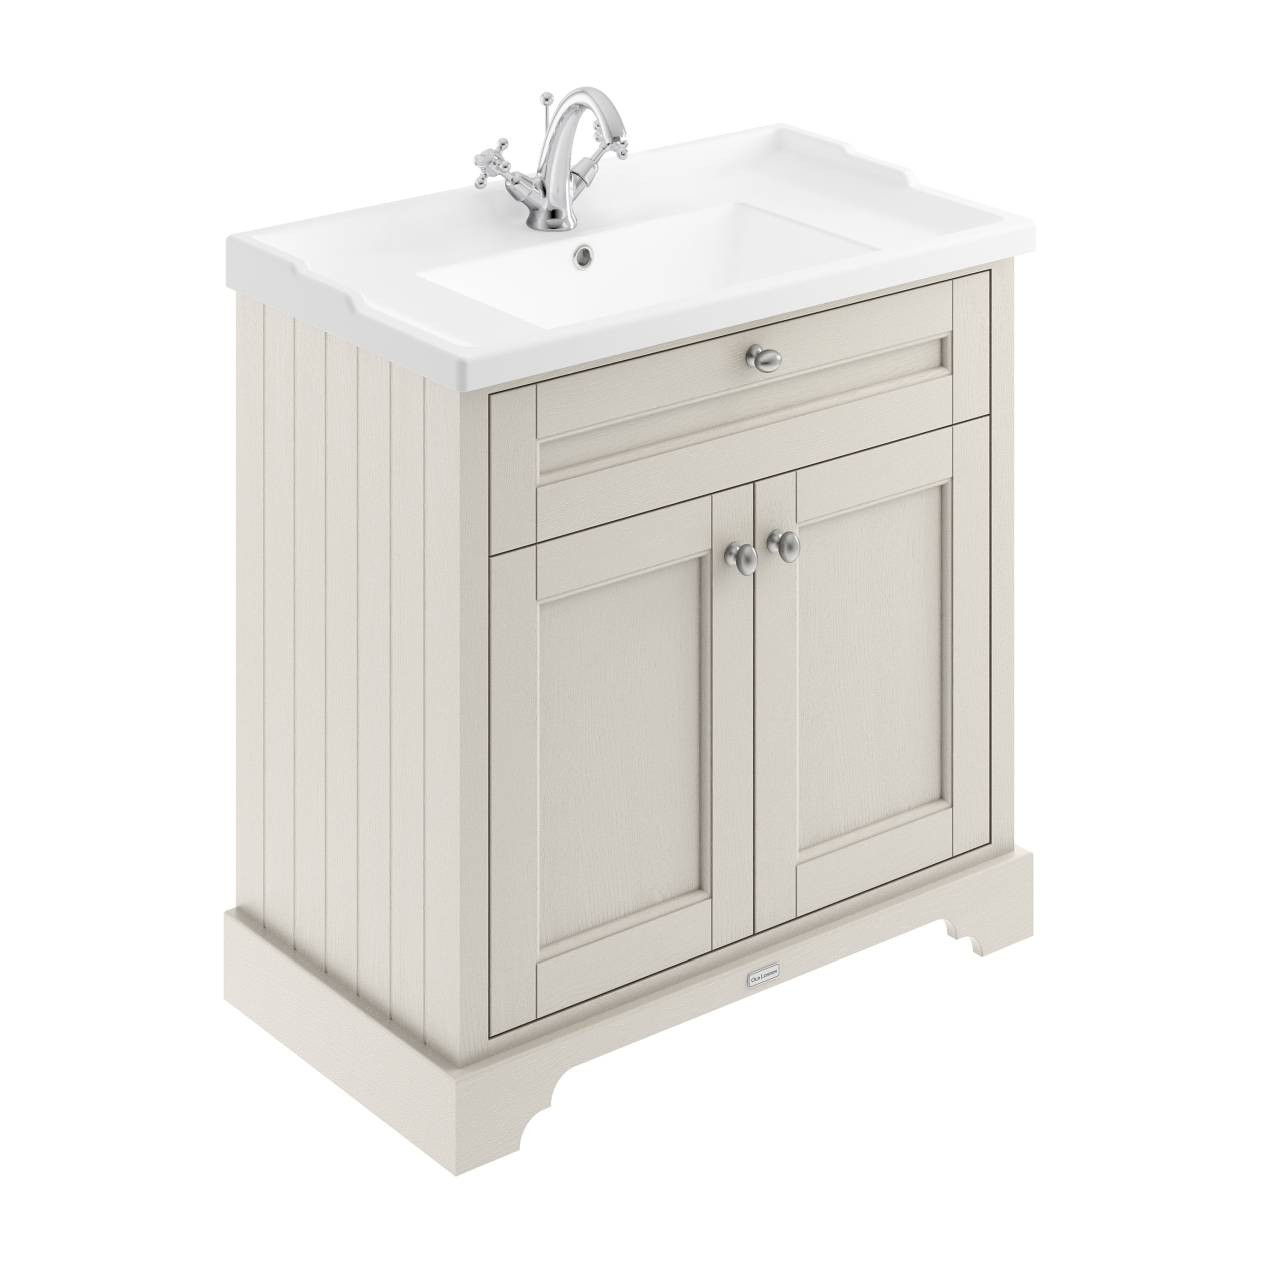 Basin NOT INCLUDED 800mm Bathroom Vanity Unit ONLY